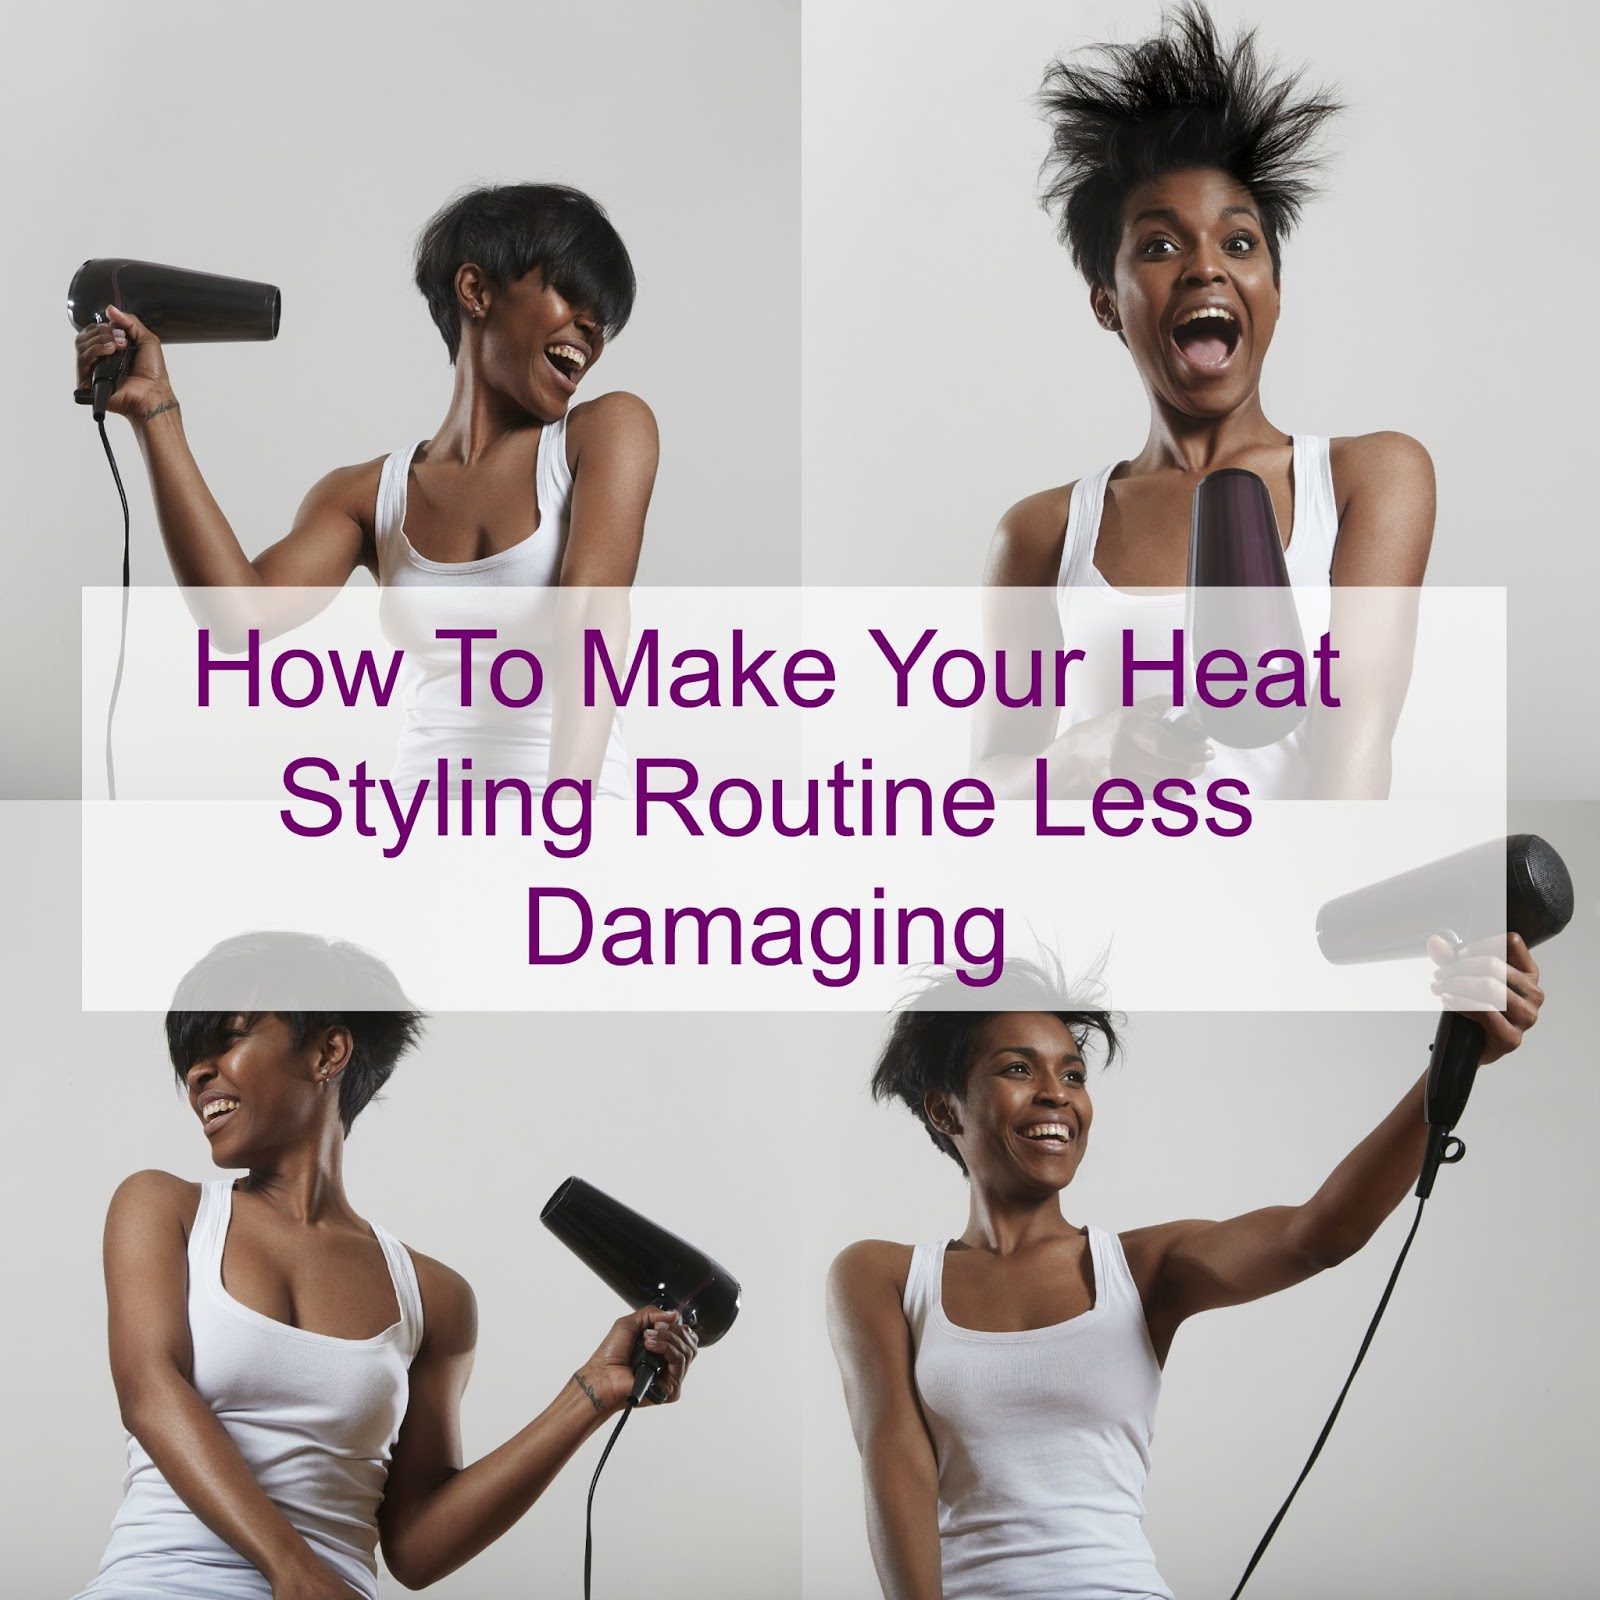 How To Make Your Heat Styling Routine Less Damaging